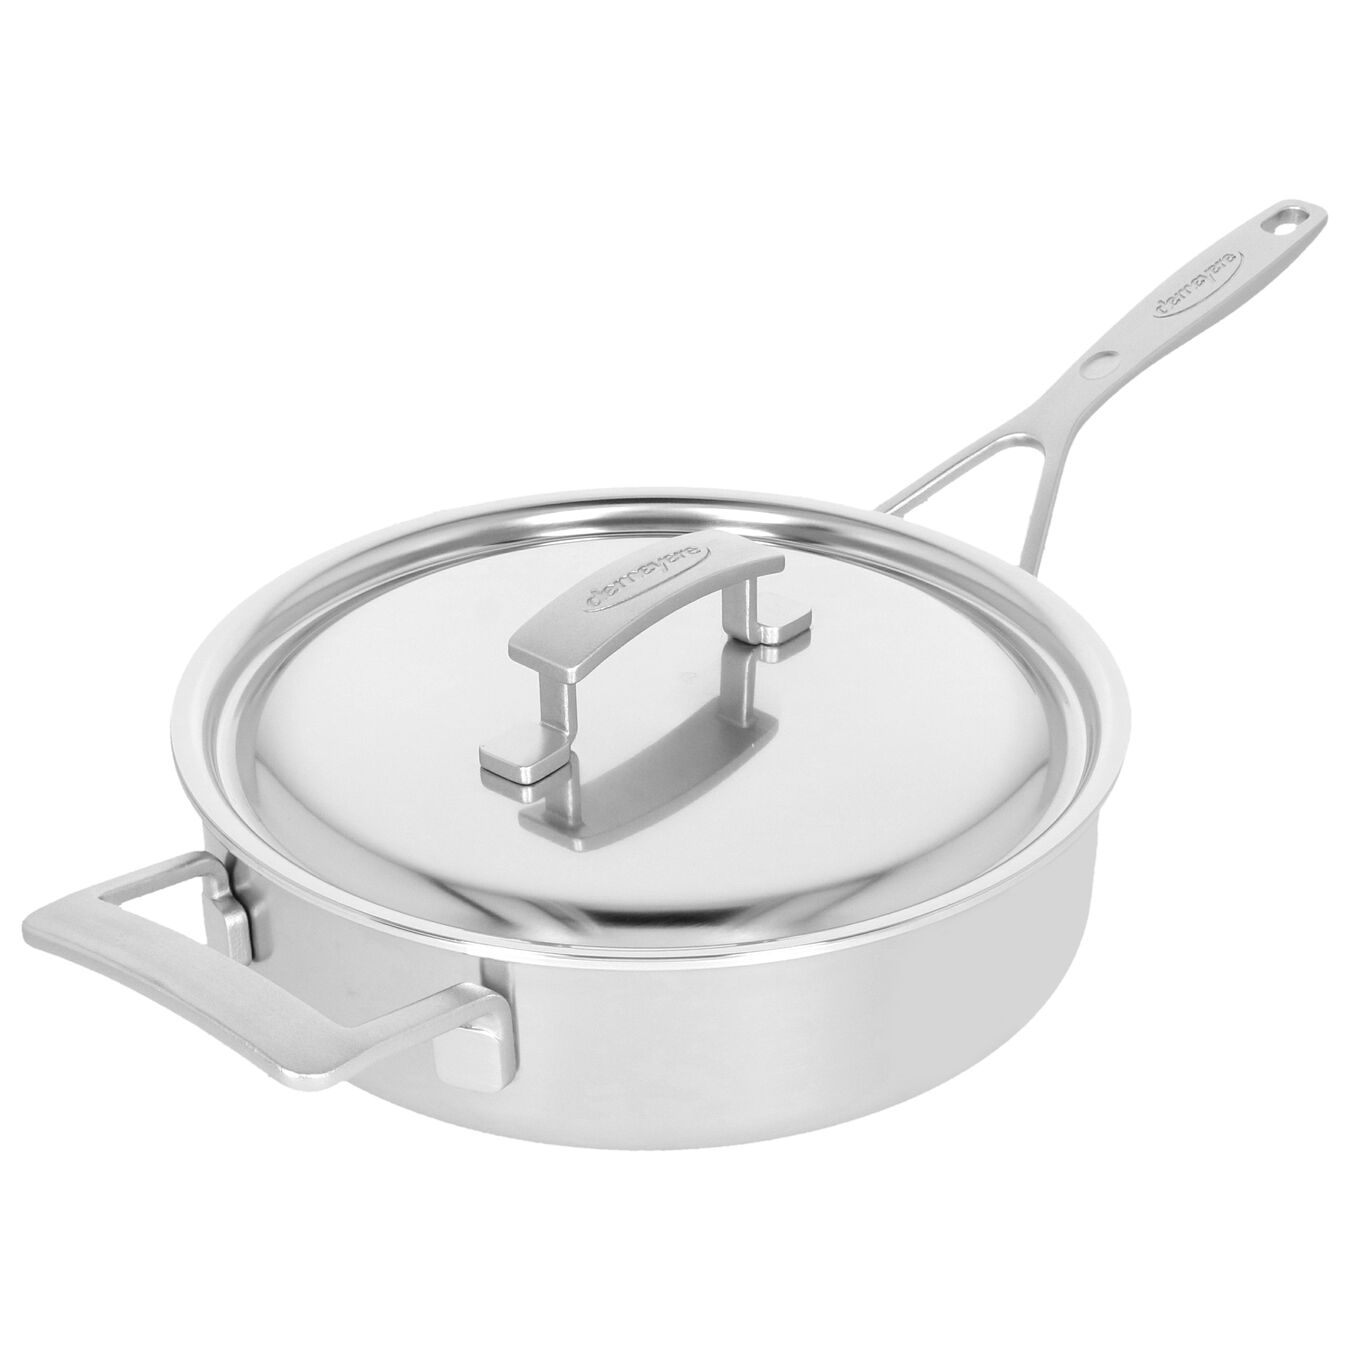 9.5-inch Saute pan with lid, 18/10 Stainless Steel ,,large 3